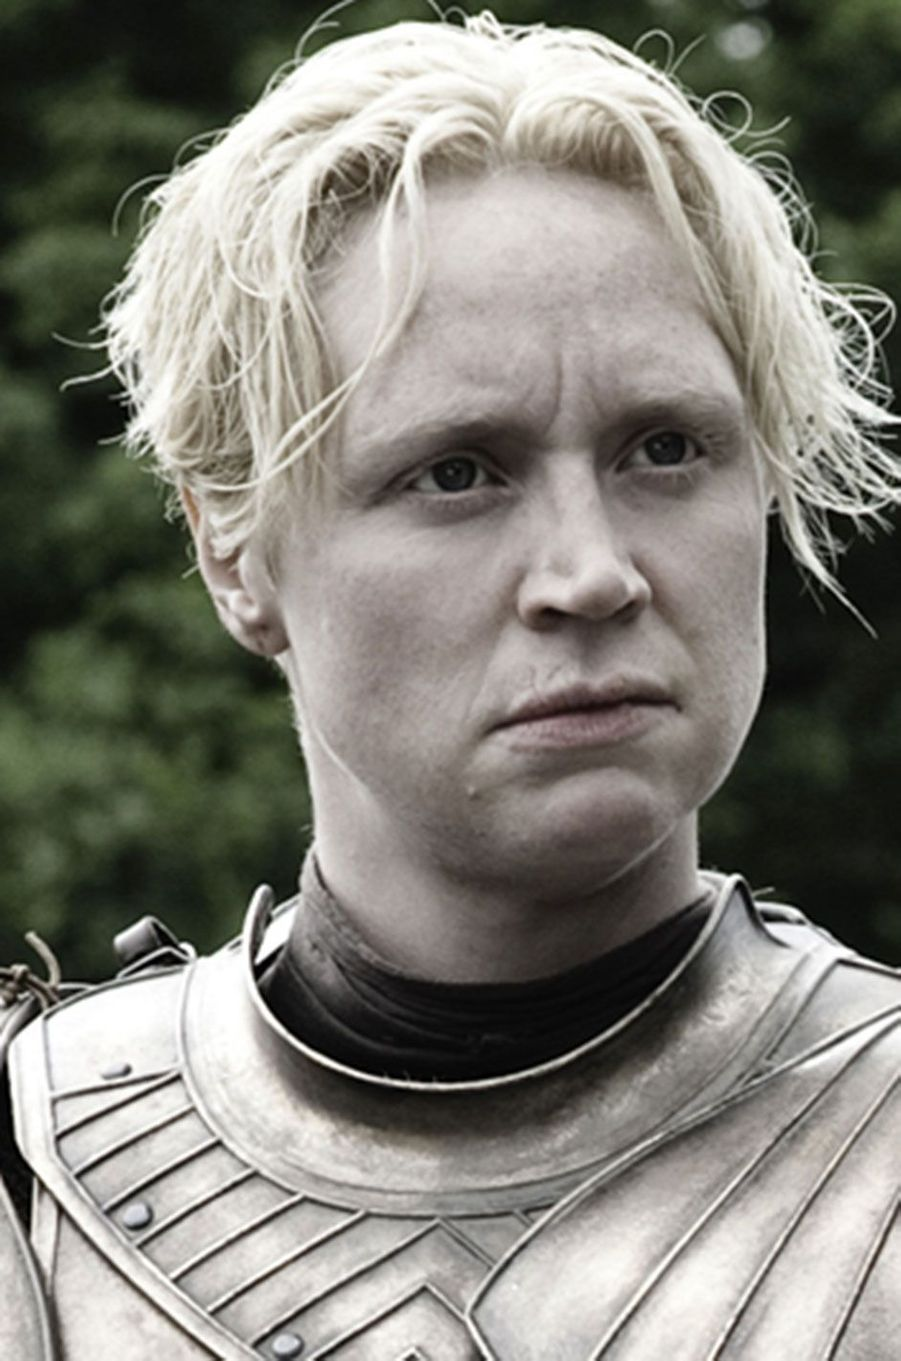 Brienne de Tarth (Gwendoline Christie)